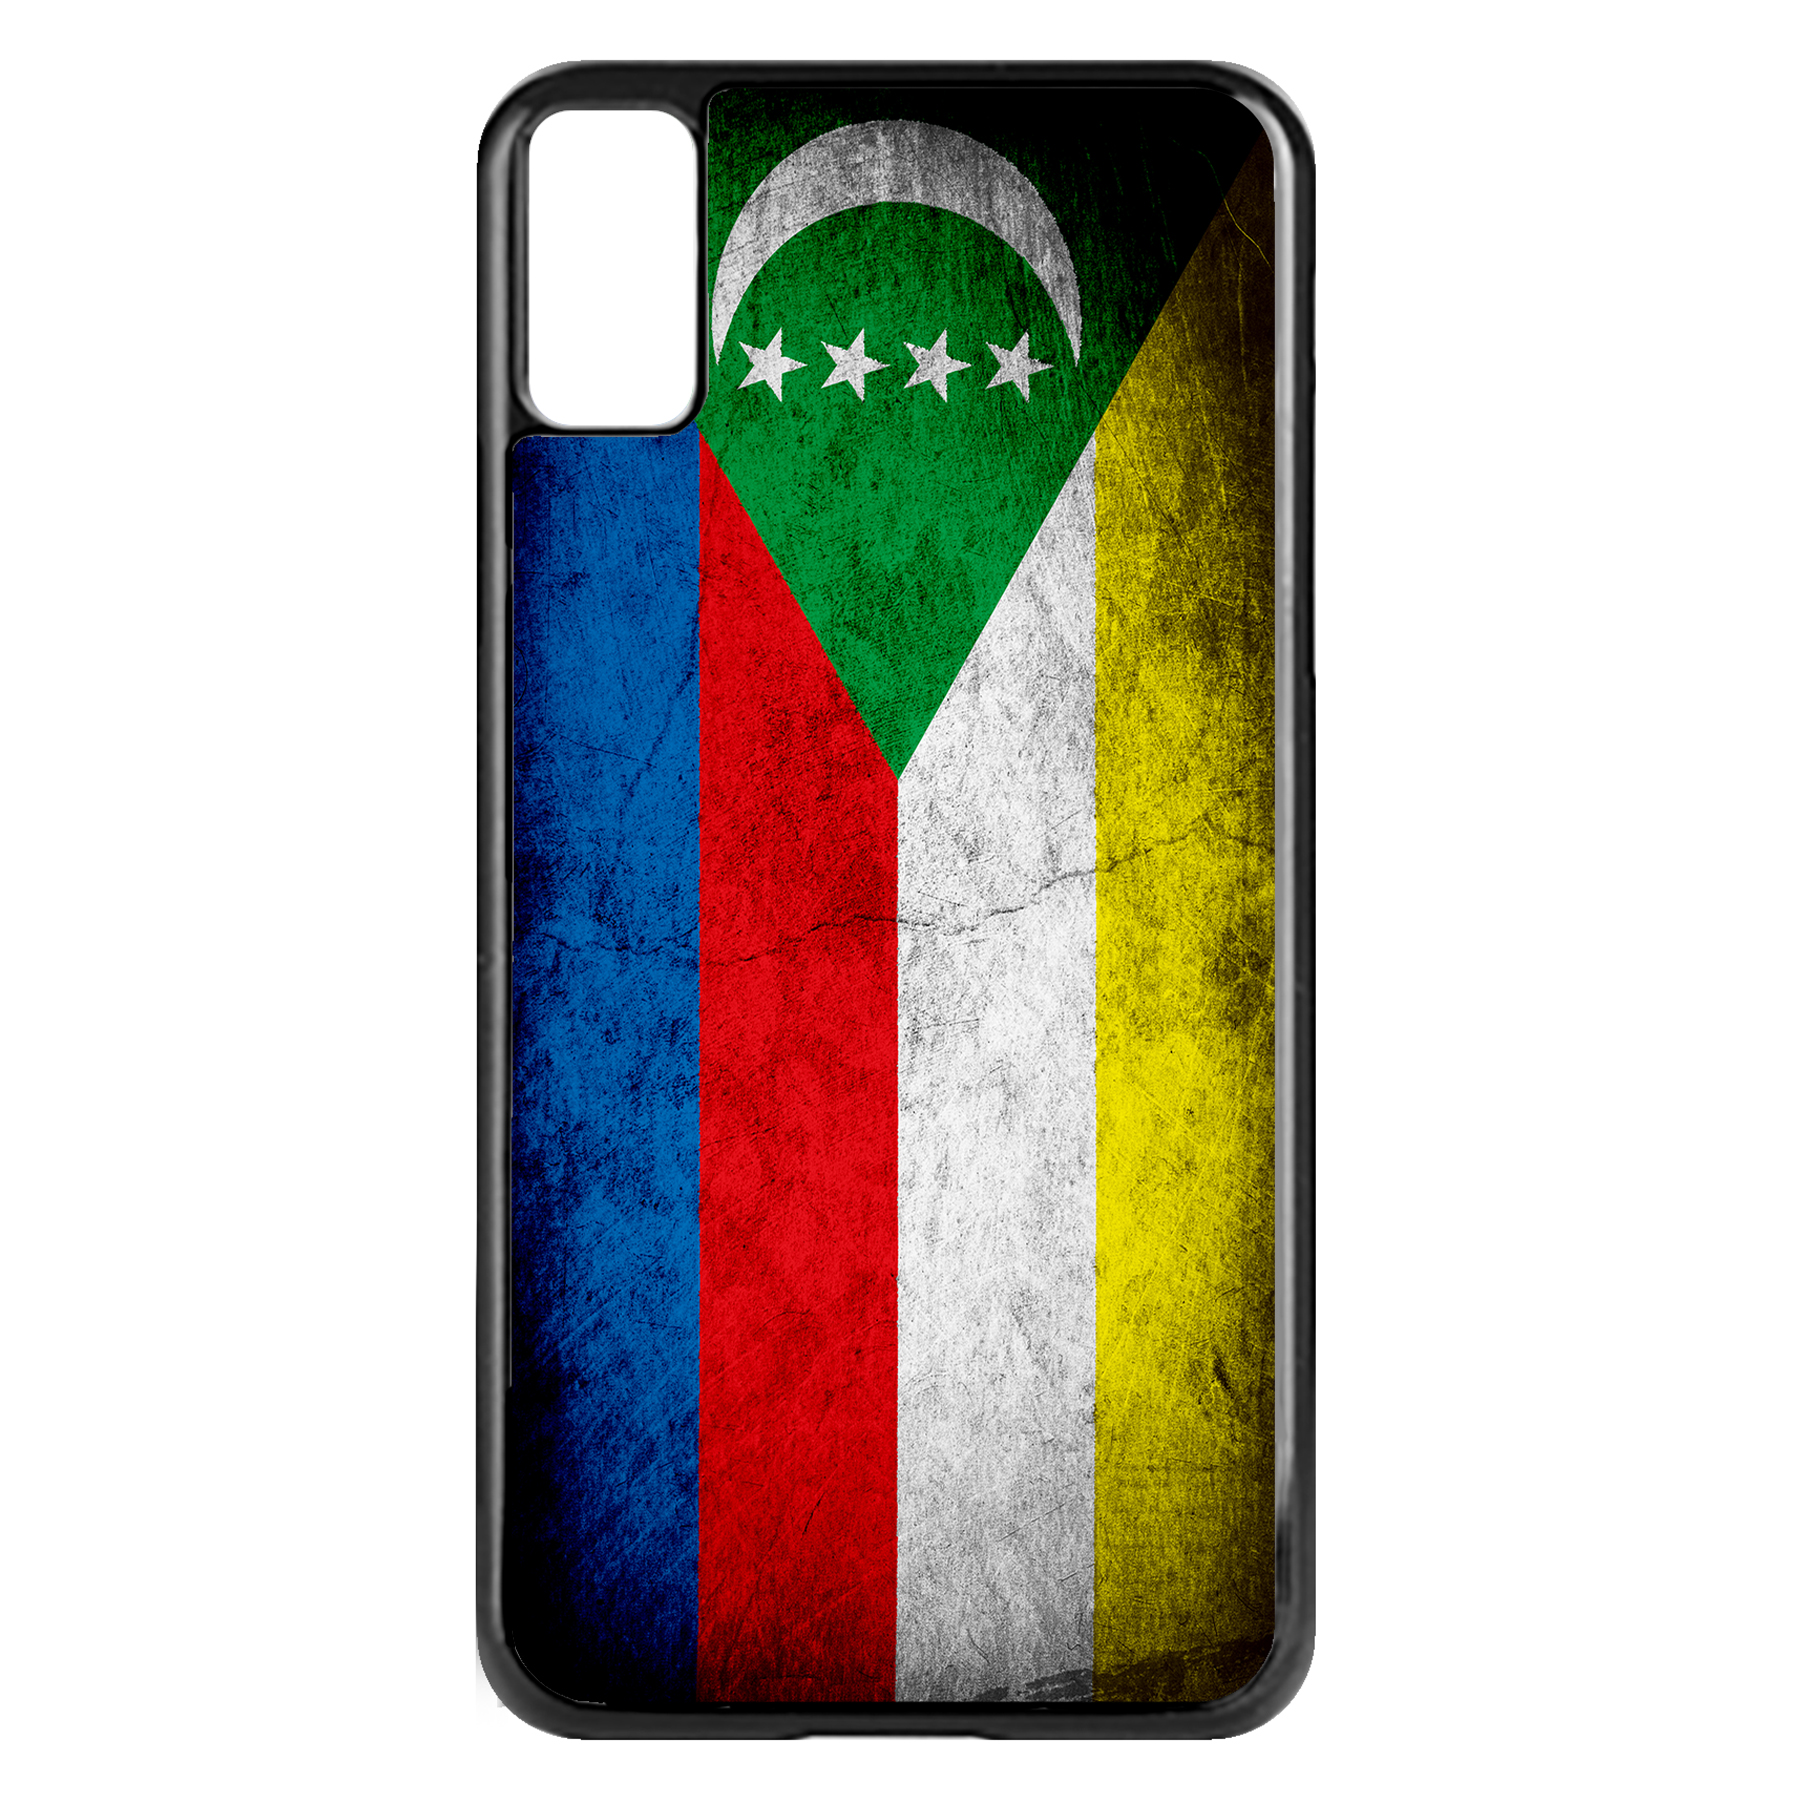 Apple-iPhone-Case-with-Flag-of-Comoros-Comorian-Many-Design-Options thumbnail 70